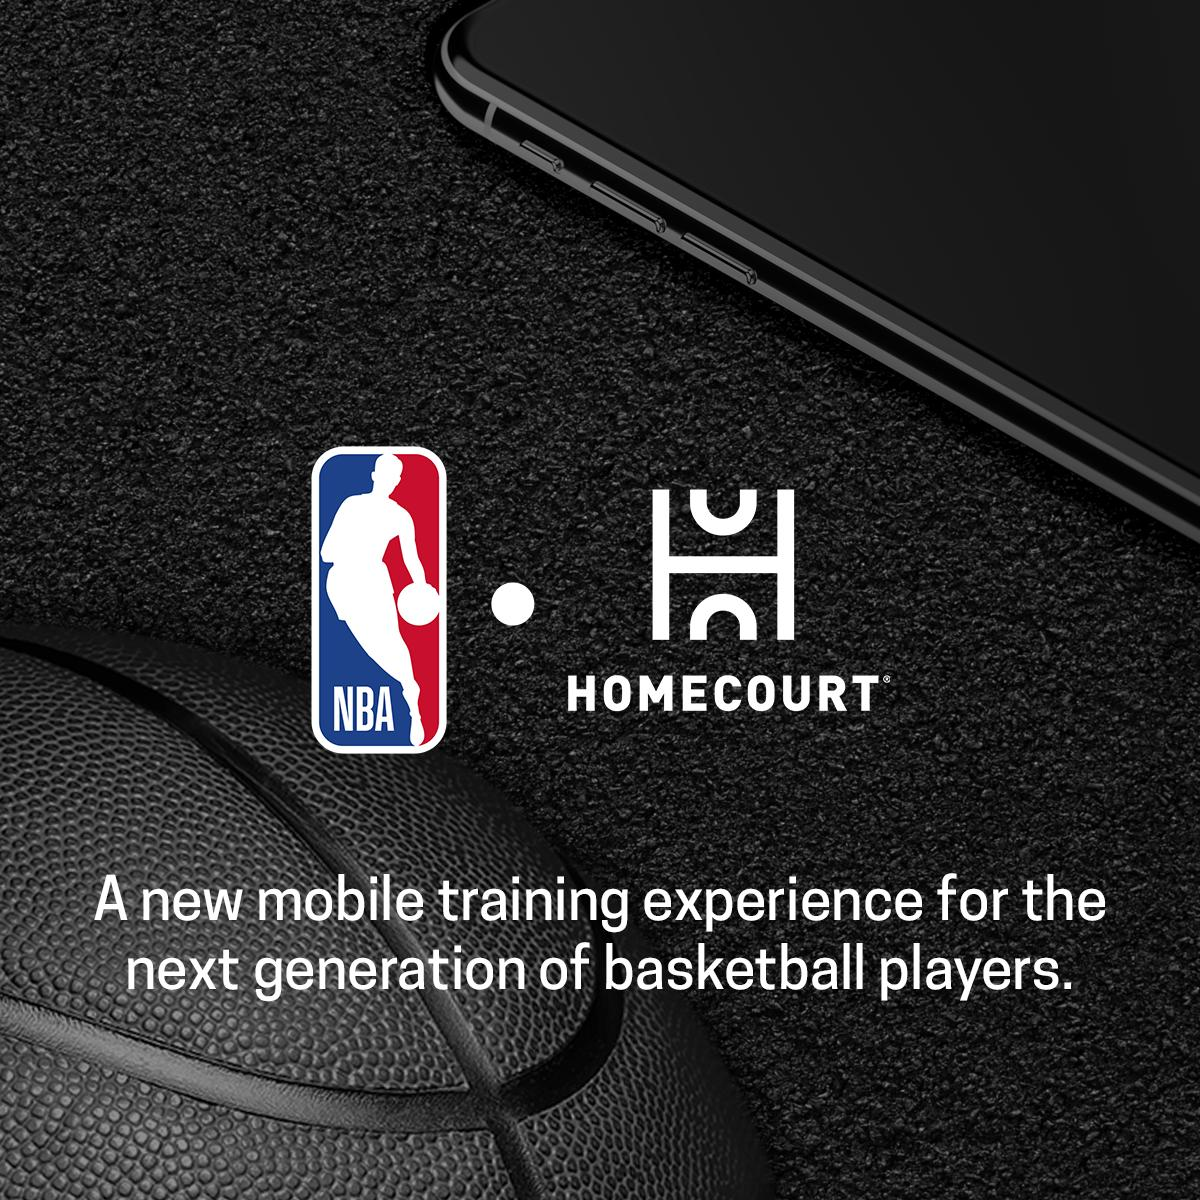 The NBA is excited to announce its partnership with @HomeCourtai to develop a new mobile training experience for the next generation of basketball players. Check out the NBA Summer contests and start honing your basketball skills. #HomeCourtNBA   📱: https://t.co/KVi4Ob2AYt https://t.co/nSF2Zkygda